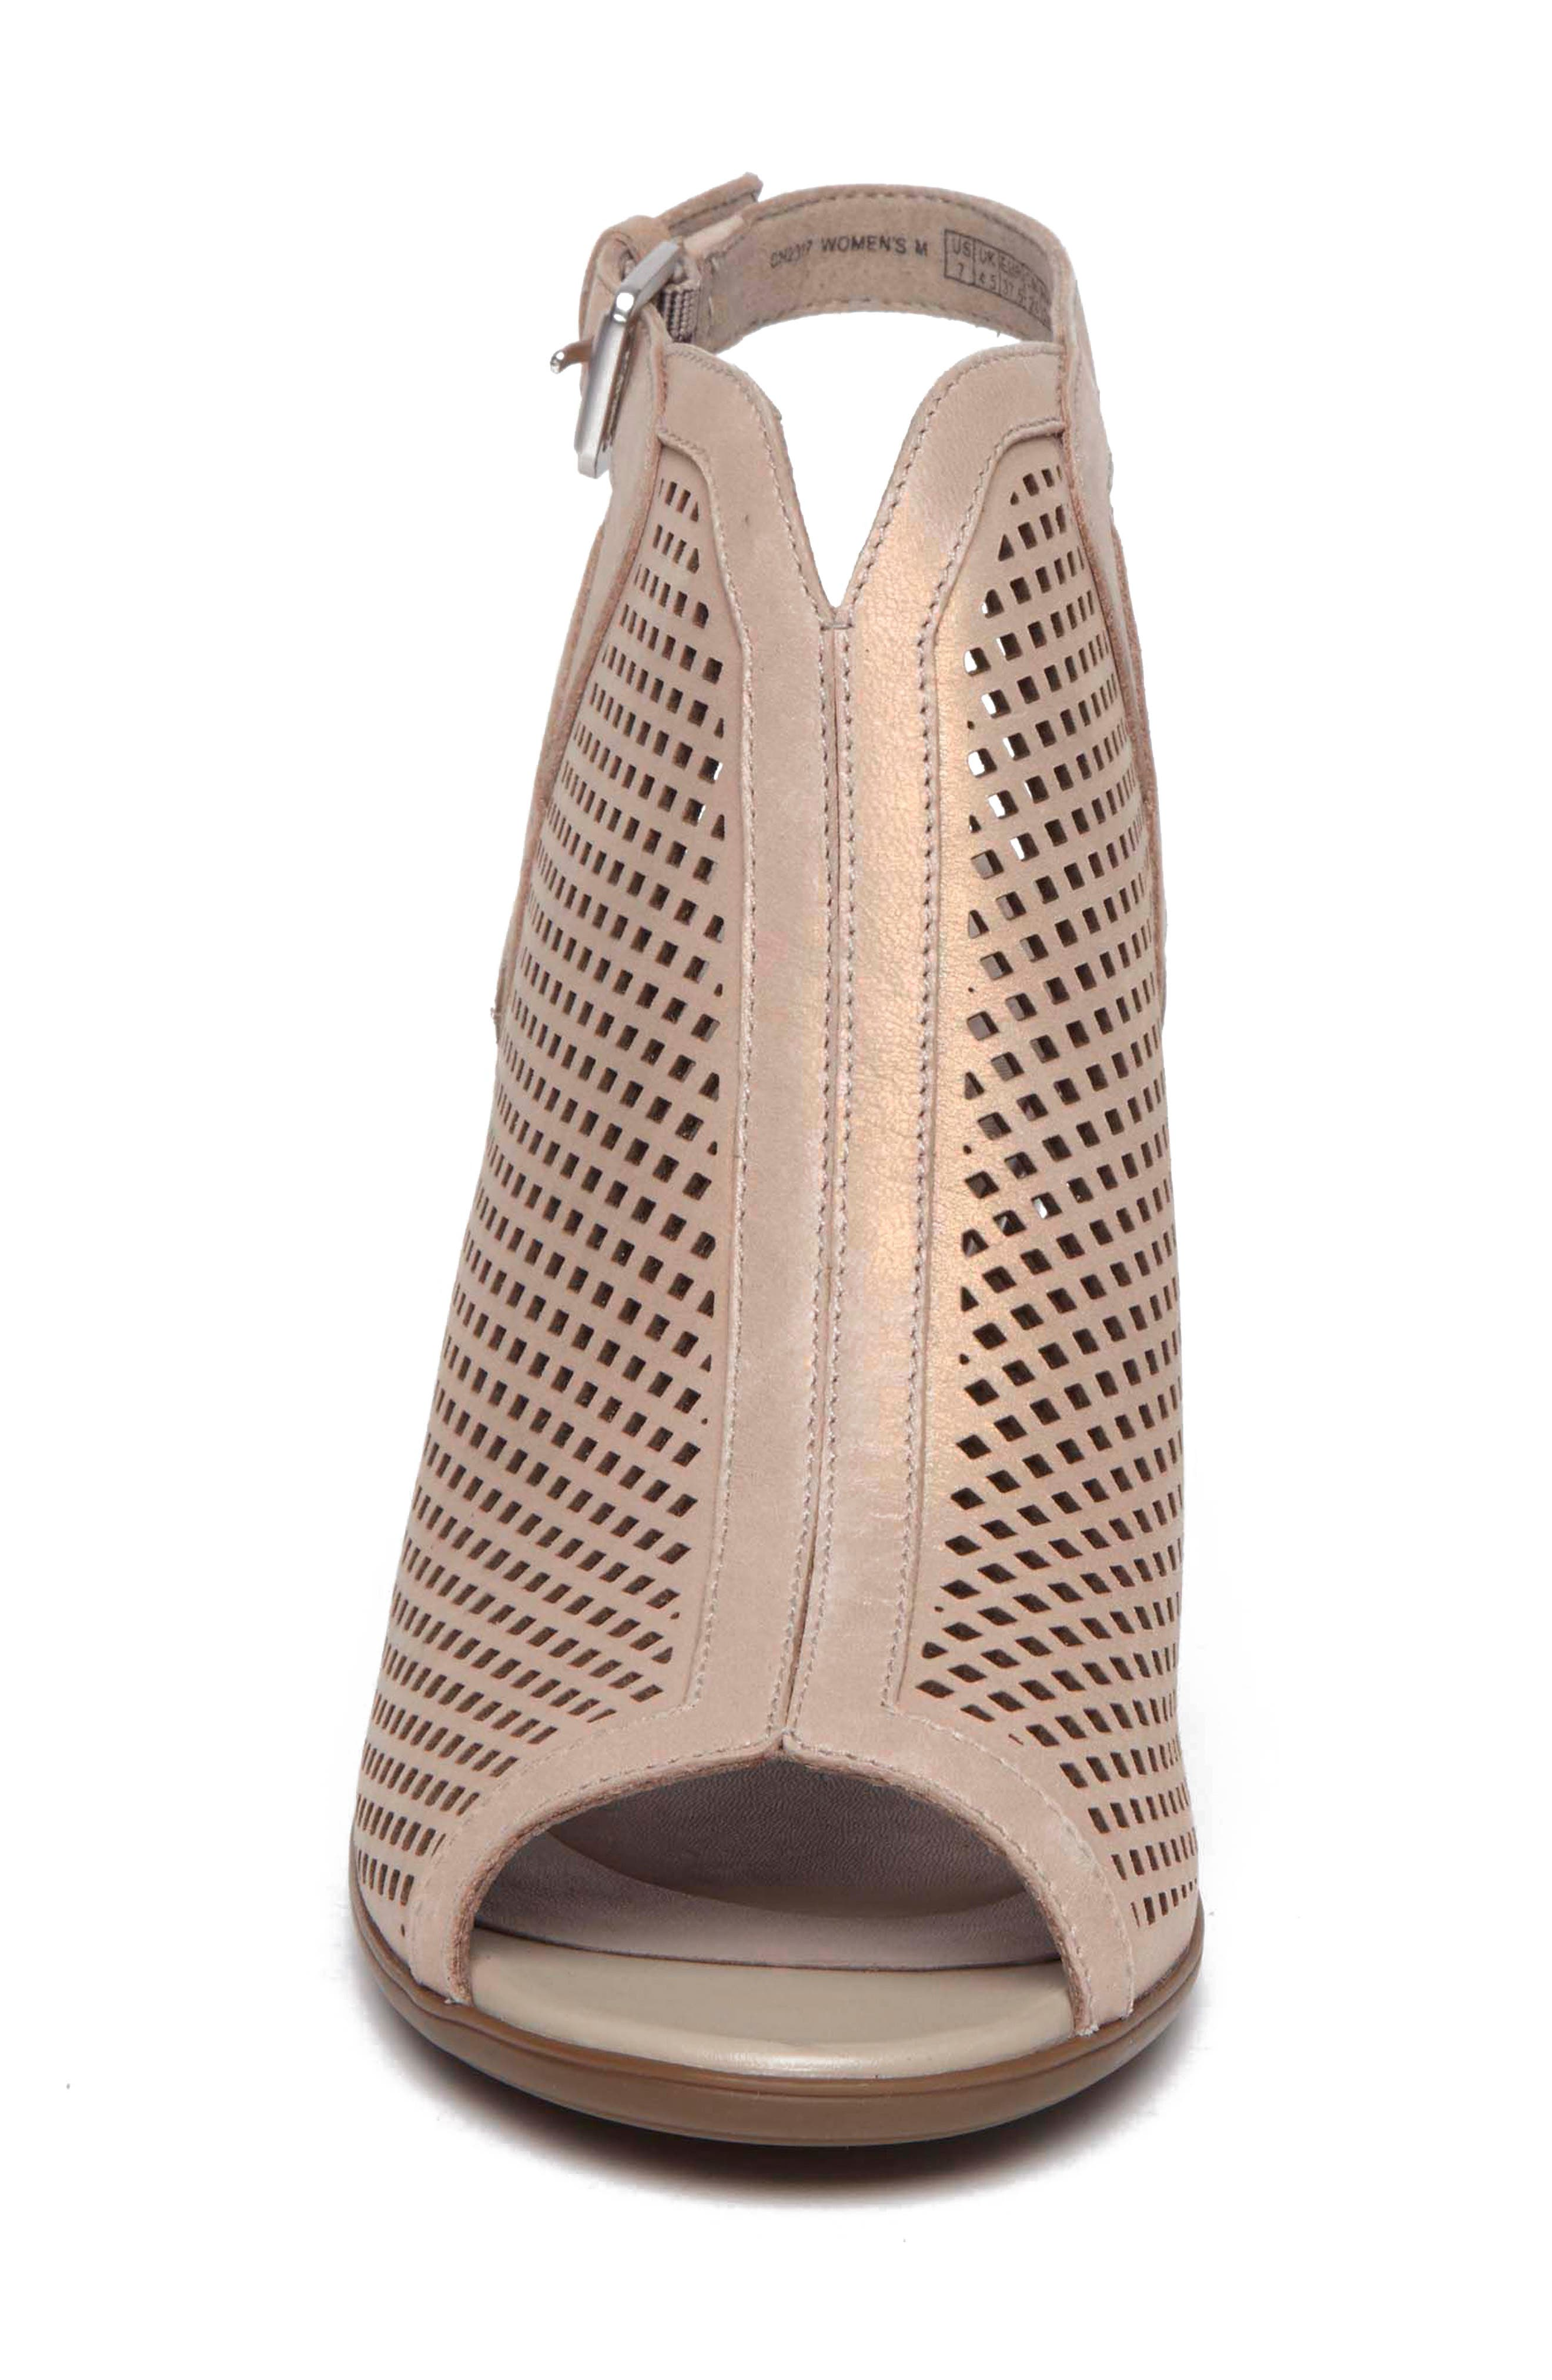 Total Motion Luxe Perforated Sandal,                             Alternate thumbnail 4, color,                             DOVE LEATHER